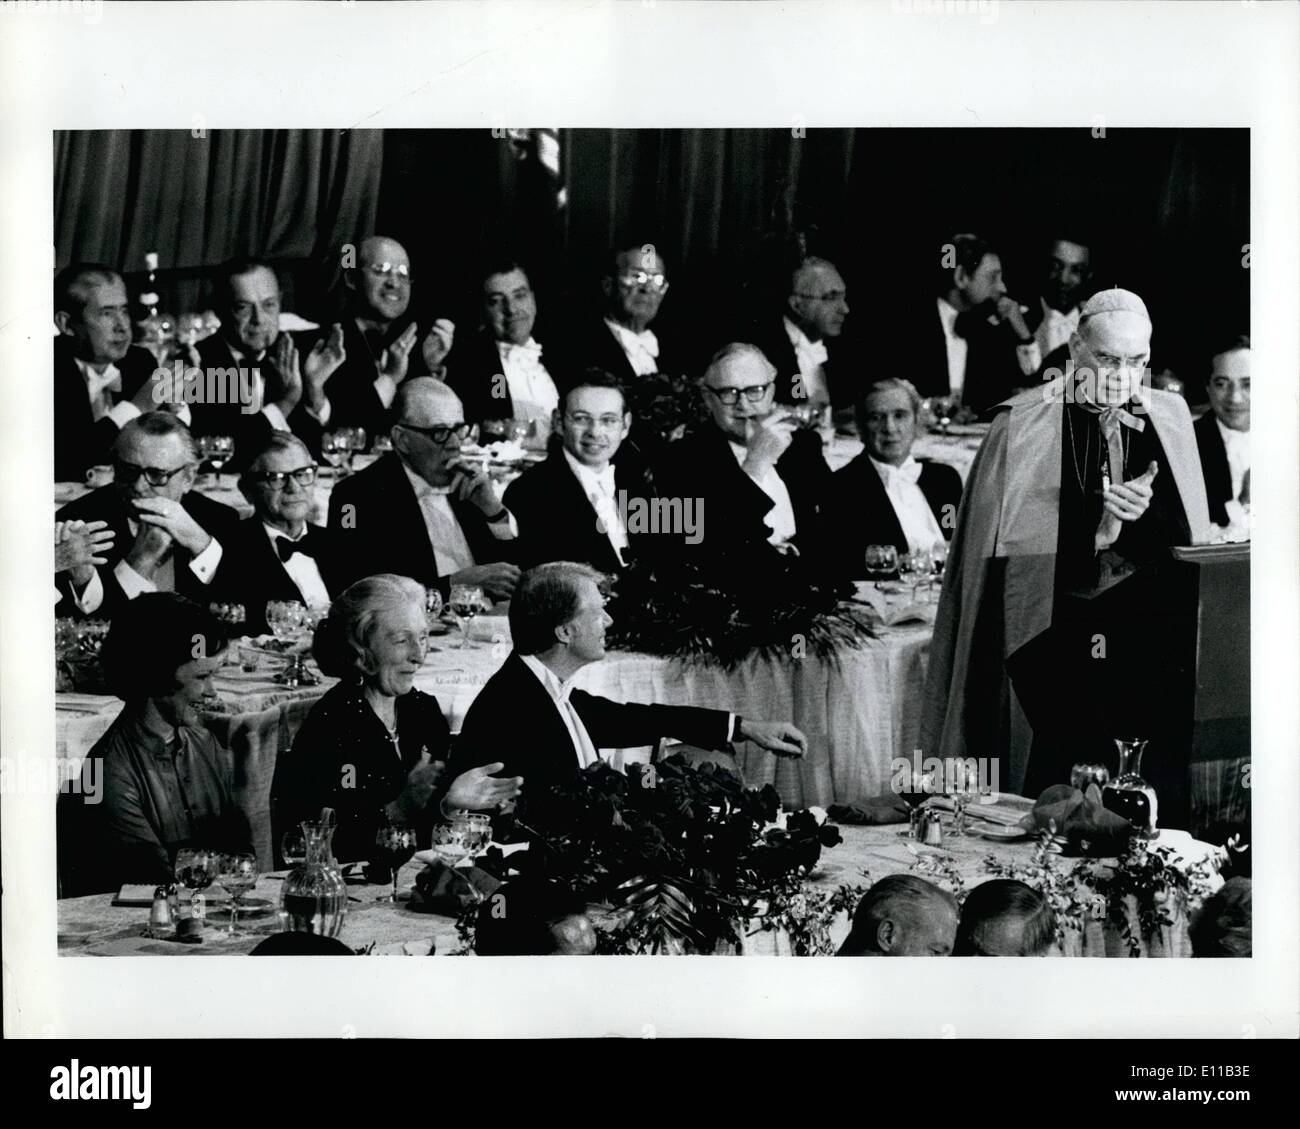 Oct. 10, 1976 - Mrs. Henry J. Gaisman between  and Rosalyn Cortes. Annual dinner of the Alfred E. Smith FOundation, Inc. Held at the New York Waldrof Astoria Hotel in New York City. - Stock Image